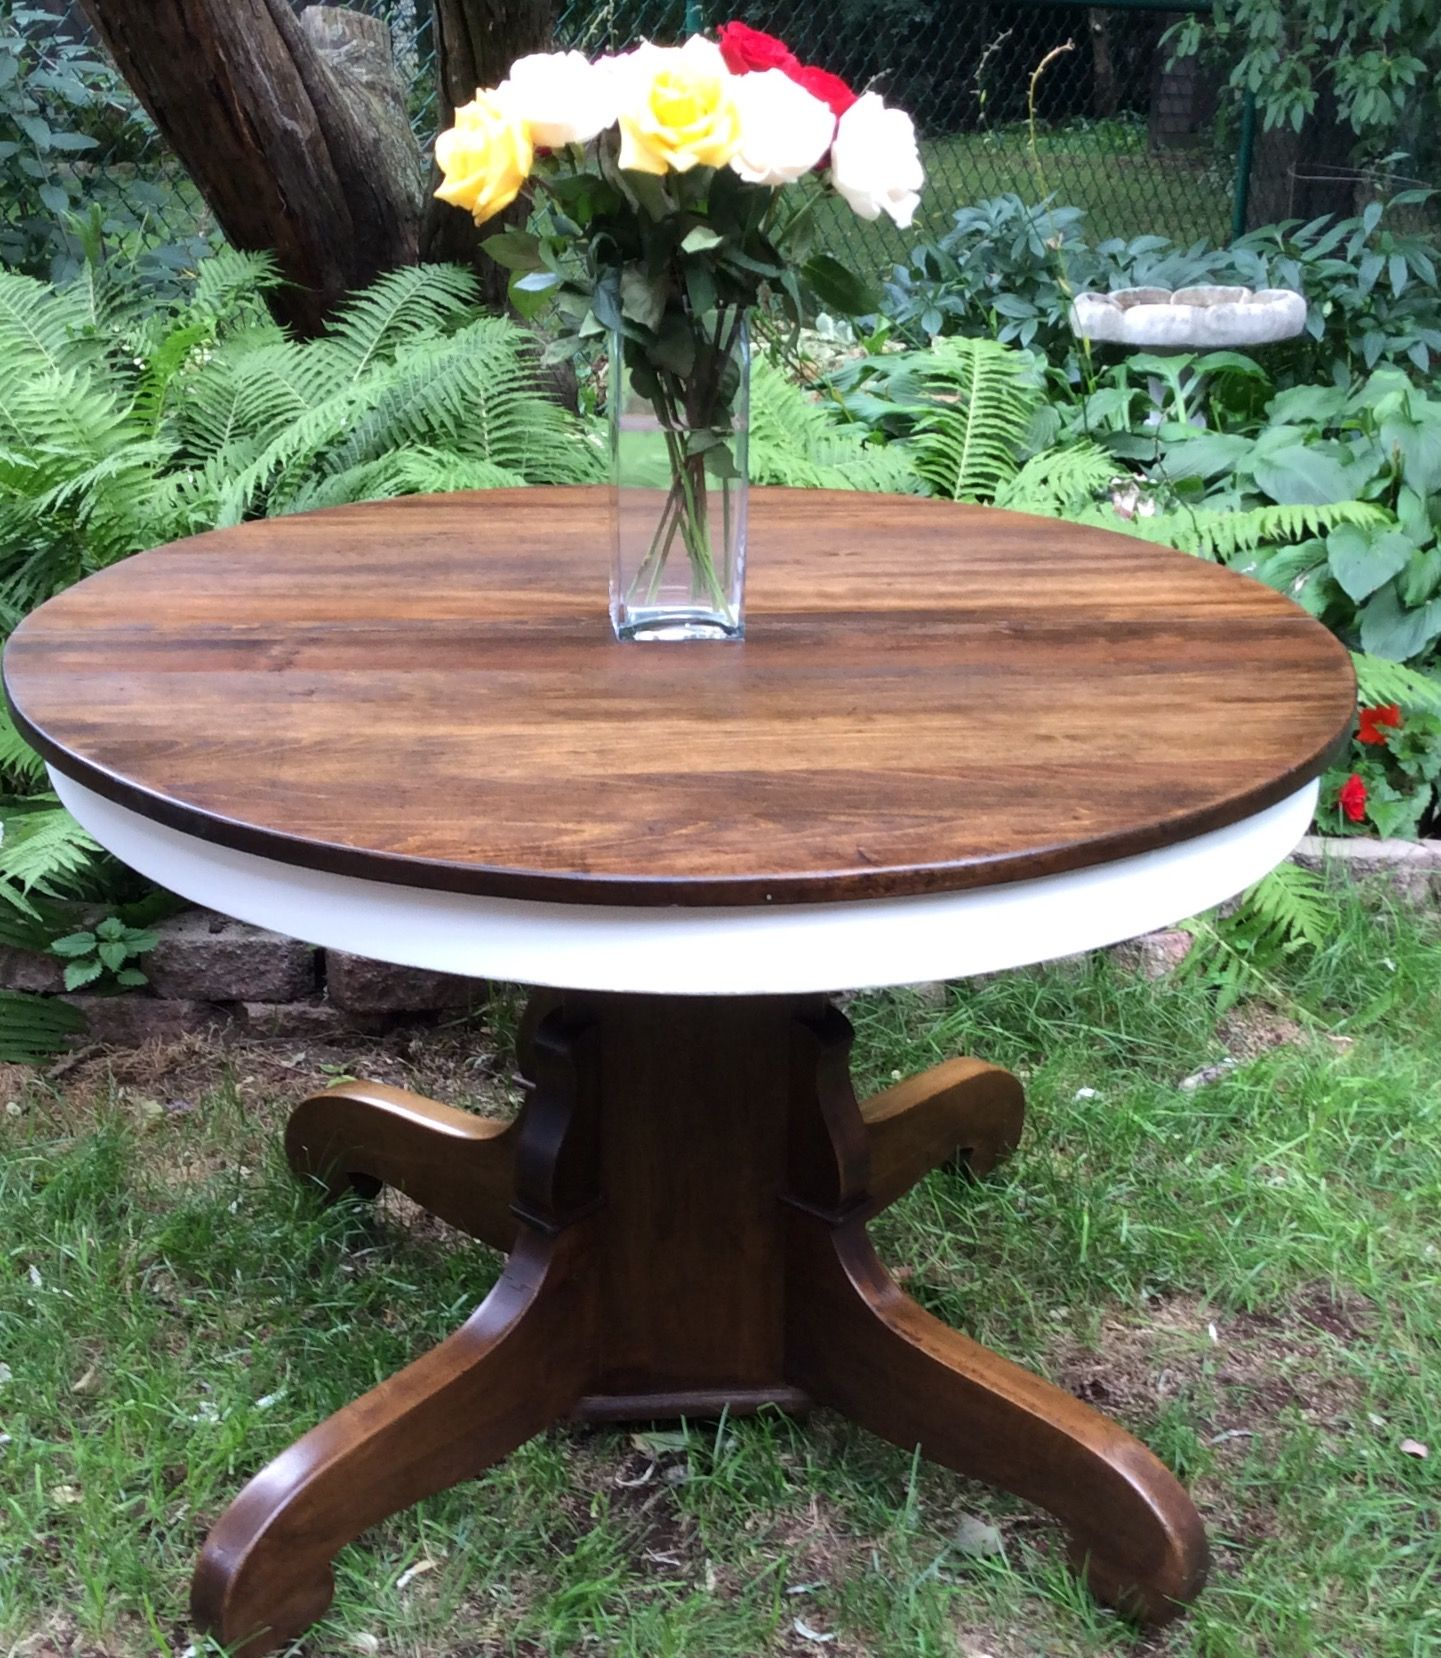 Antique Oak Pedestal Table Refinished In Annie Sloan Pure White Chalk Paint  And Refinished In Dark Walnut Stain.